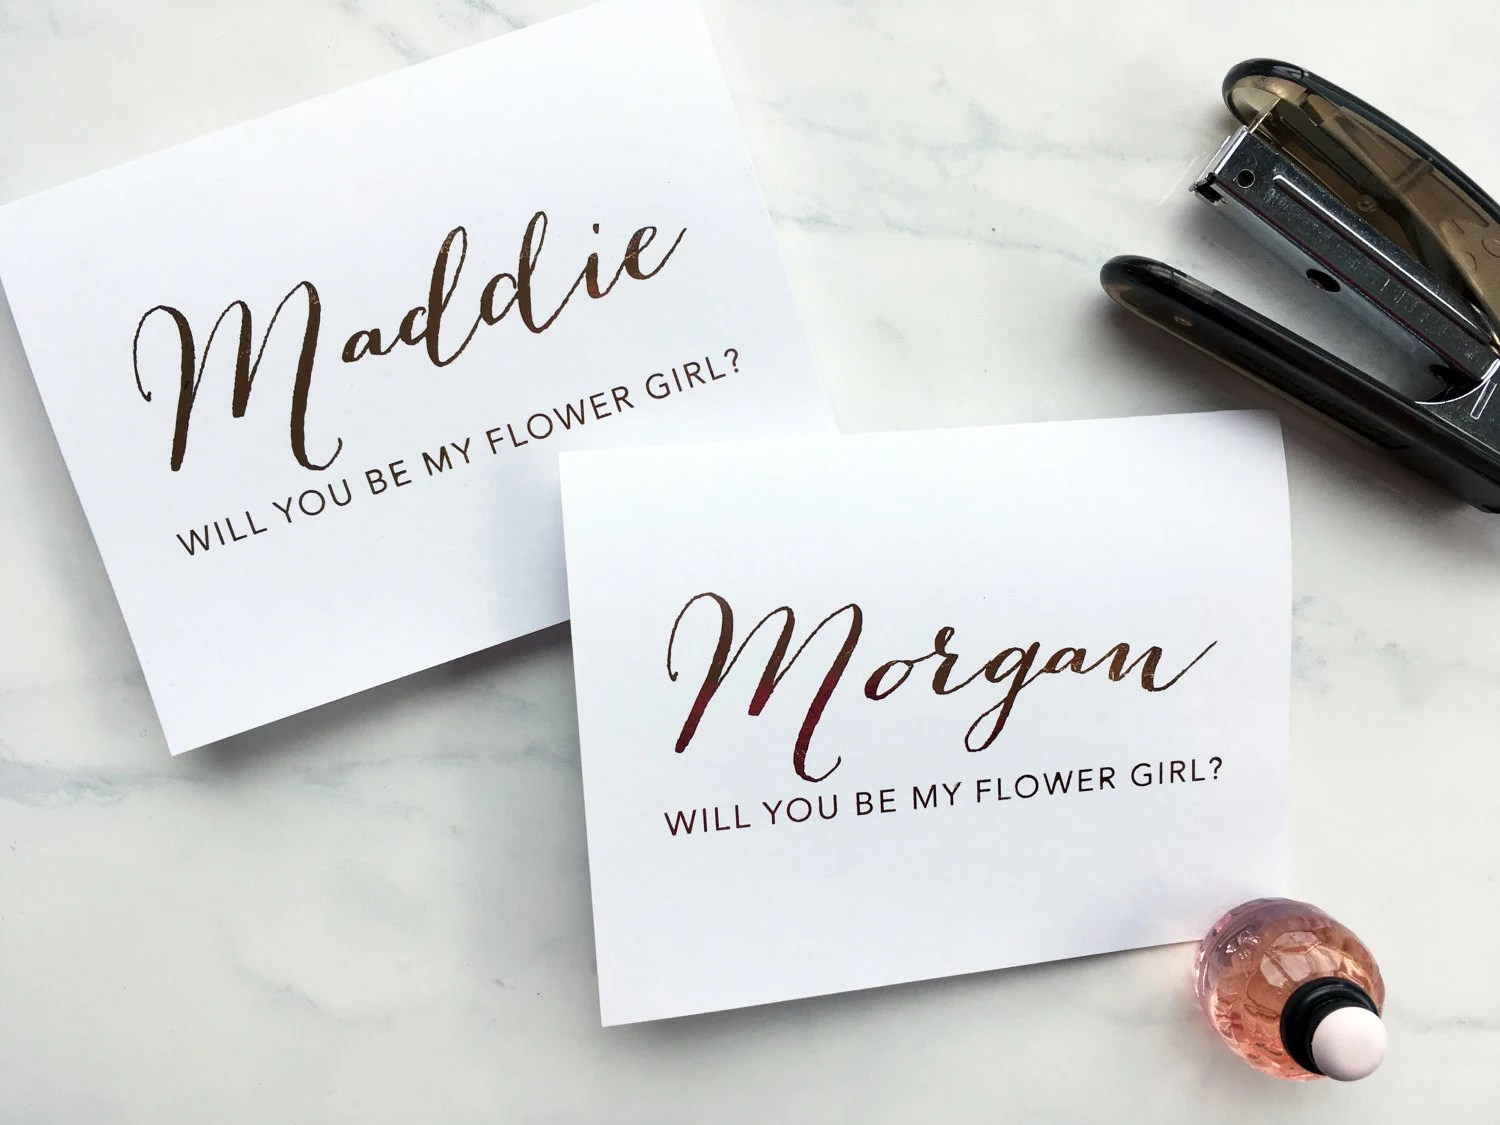 Will you be my bridesmaid maid of honor matron of honor  image 4